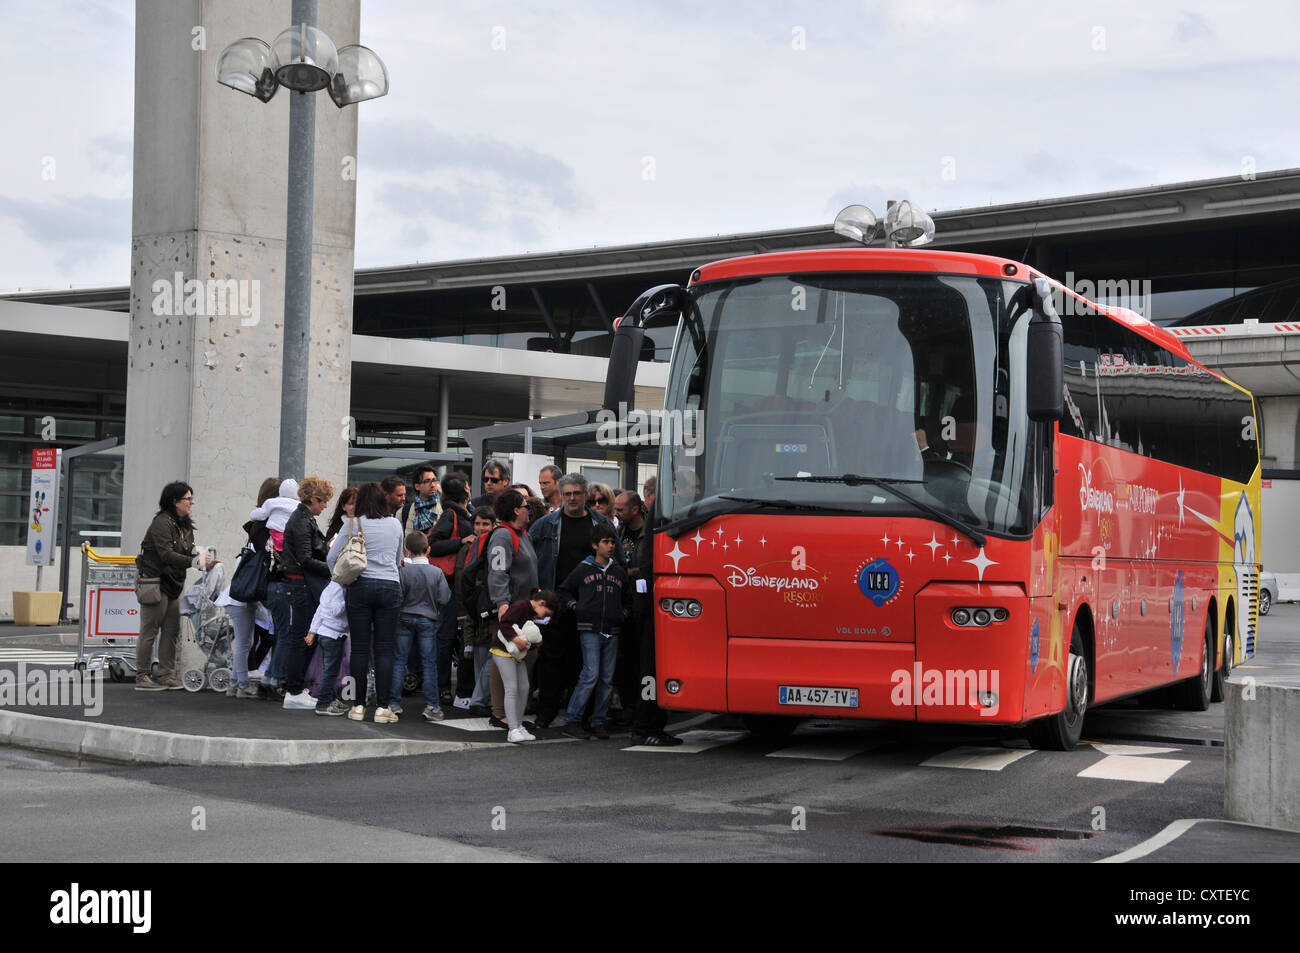 bus for disneyland roissy charles de gaulle airport france stock photo royalty free image. Black Bedroom Furniture Sets. Home Design Ideas